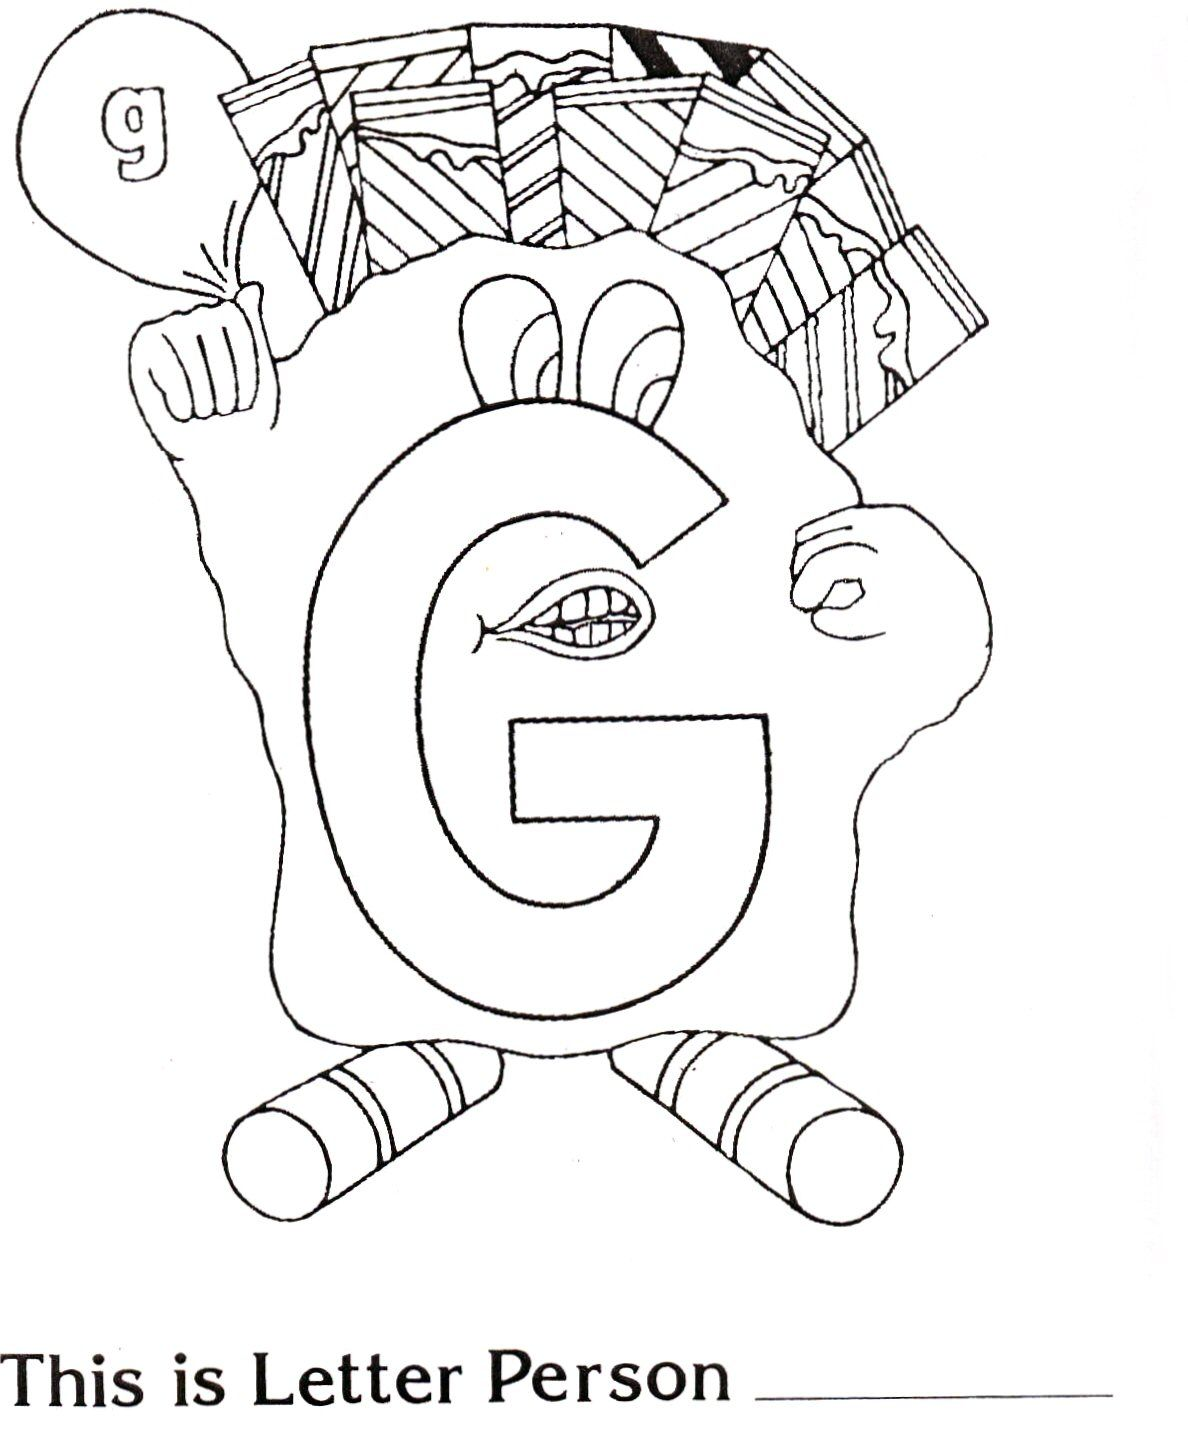 Brilliant Beginnings Preschool Letter Person G Coloring Page Printable